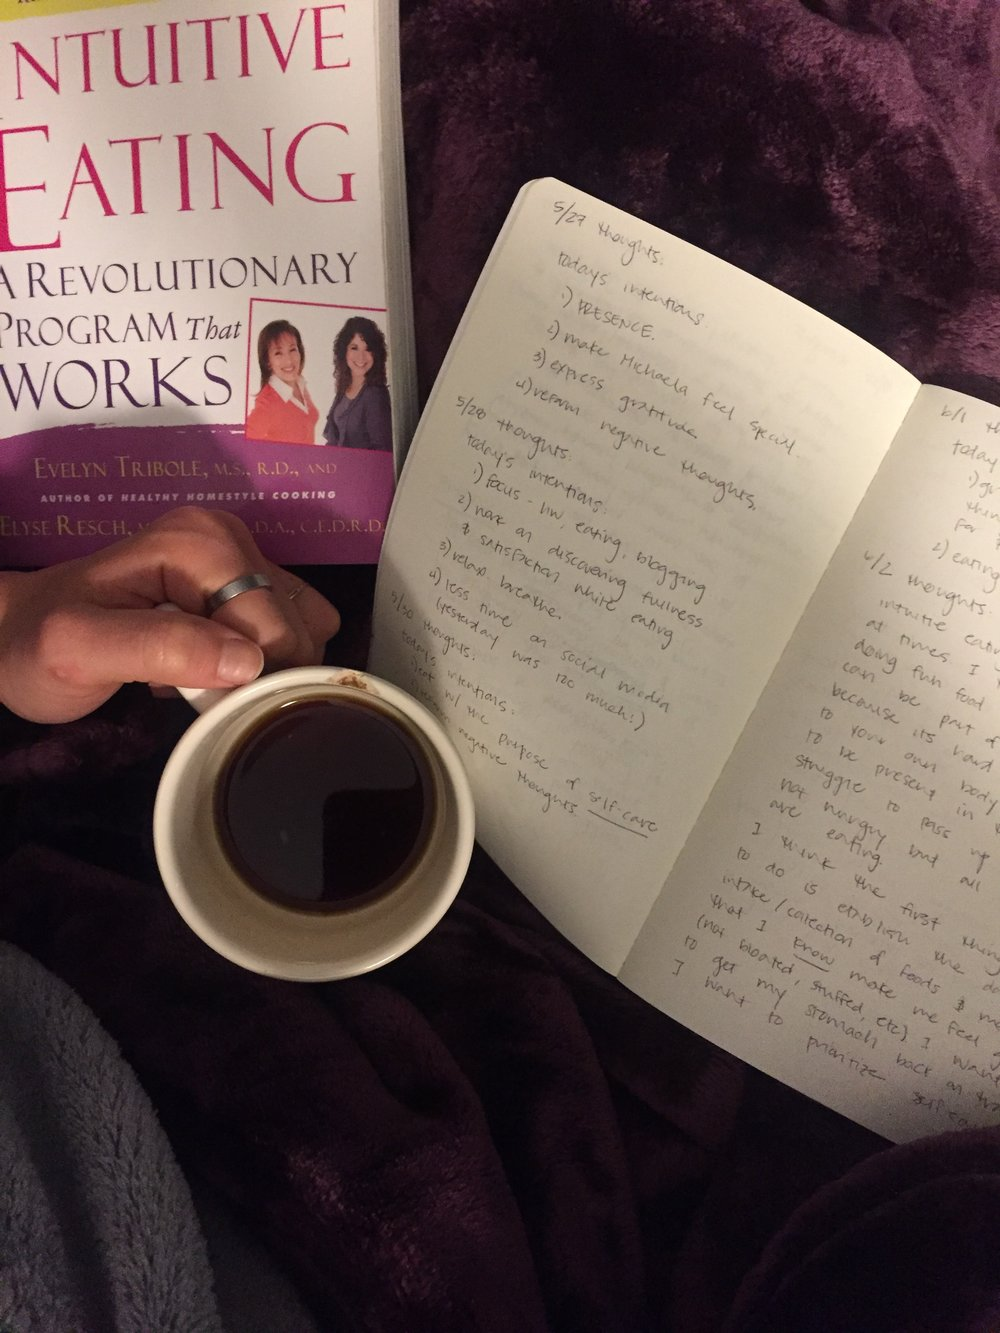 5 Things (Workouts, Friends and Food, Morning Reading, Blogging)